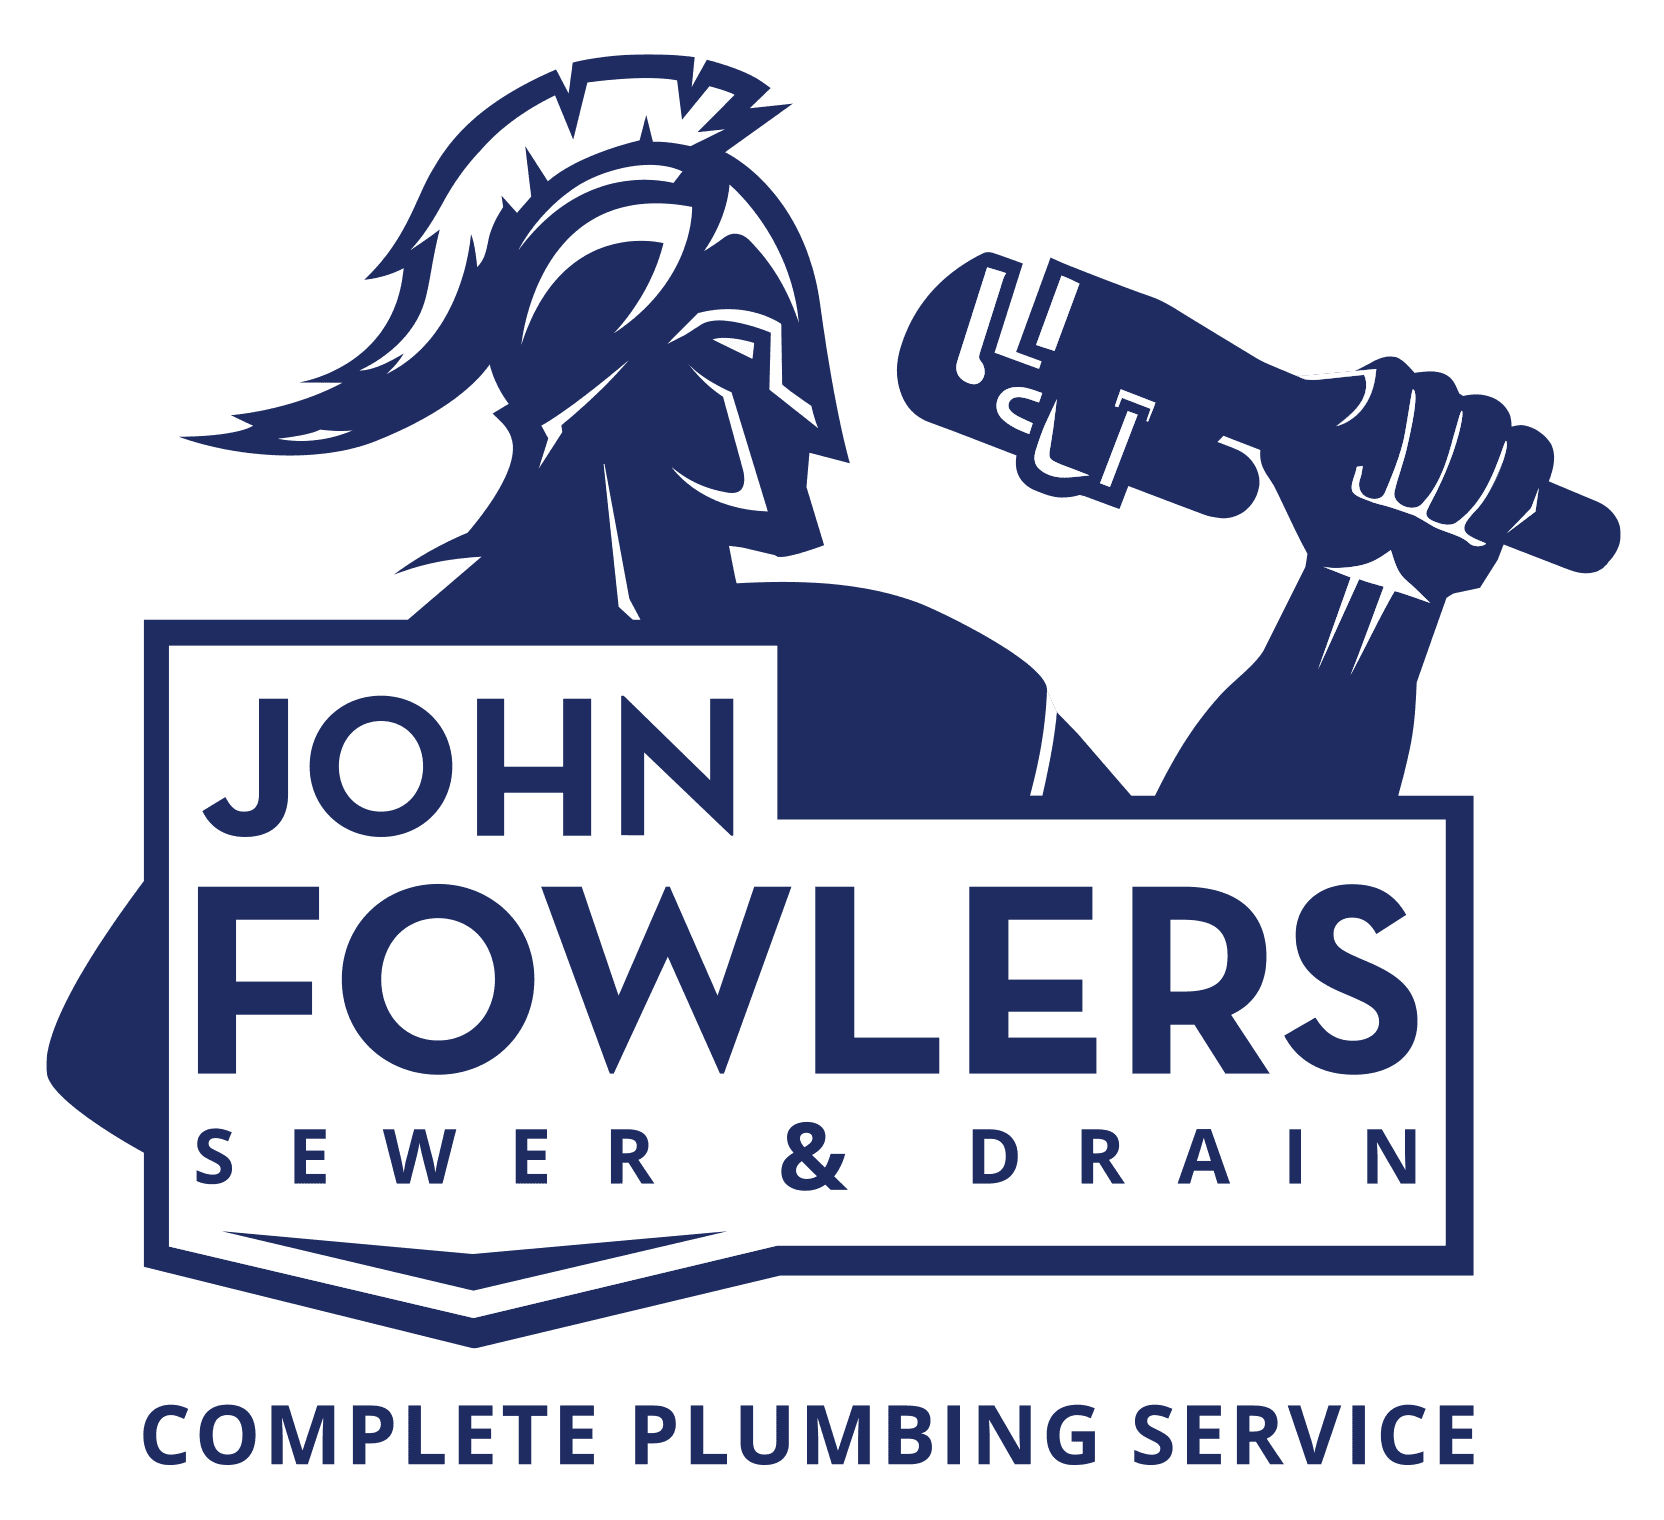 kitchen drain residential and me call sink companies near company evansville drainco commercial plumbing